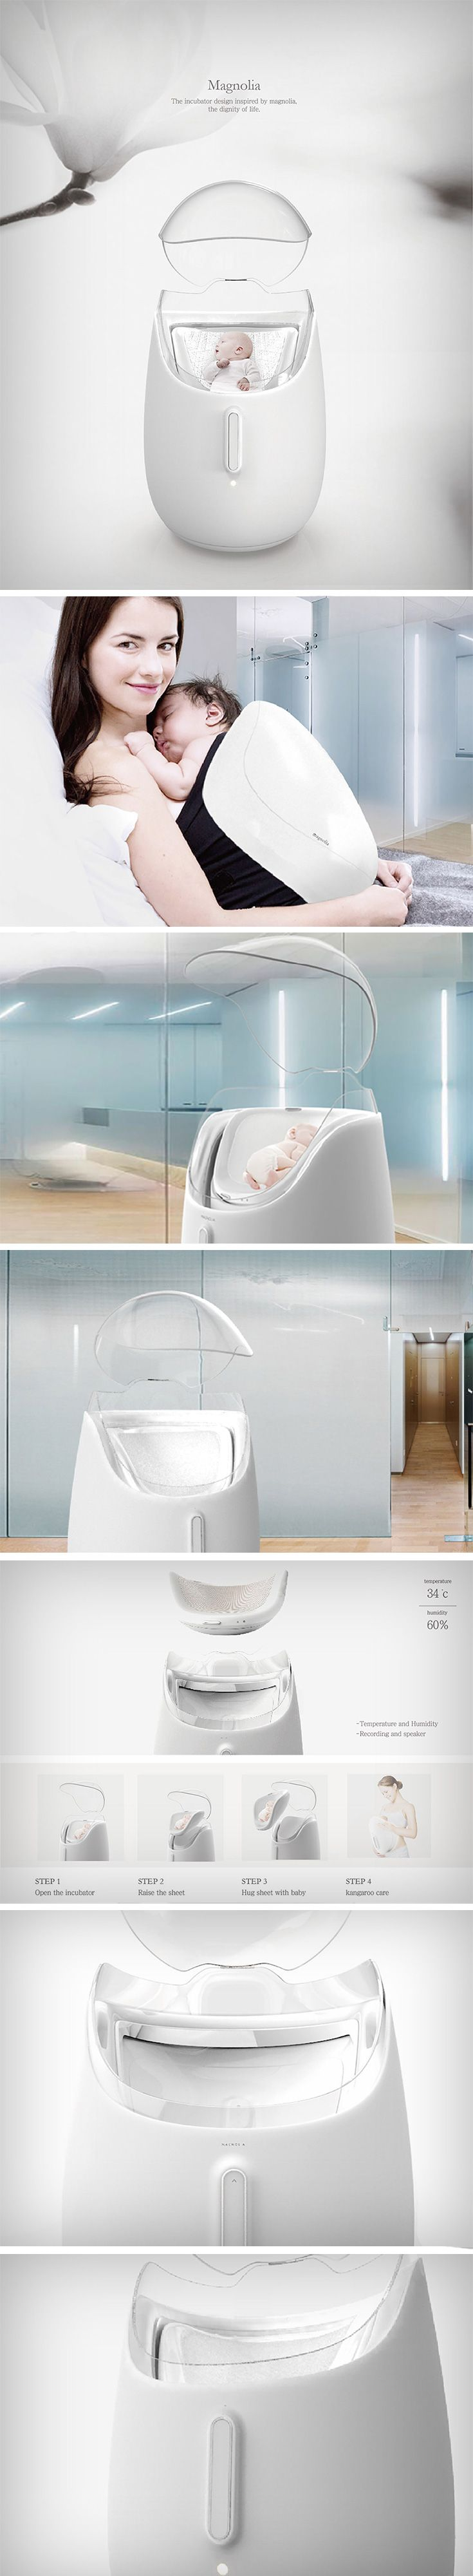 """An excellent example of applied biomimicry, Magnolia explores marrying the concept of """"kangaroo care"""" with the common incubator in order to prevent a variety of infant disorders while promoting health and well-being post birth."""